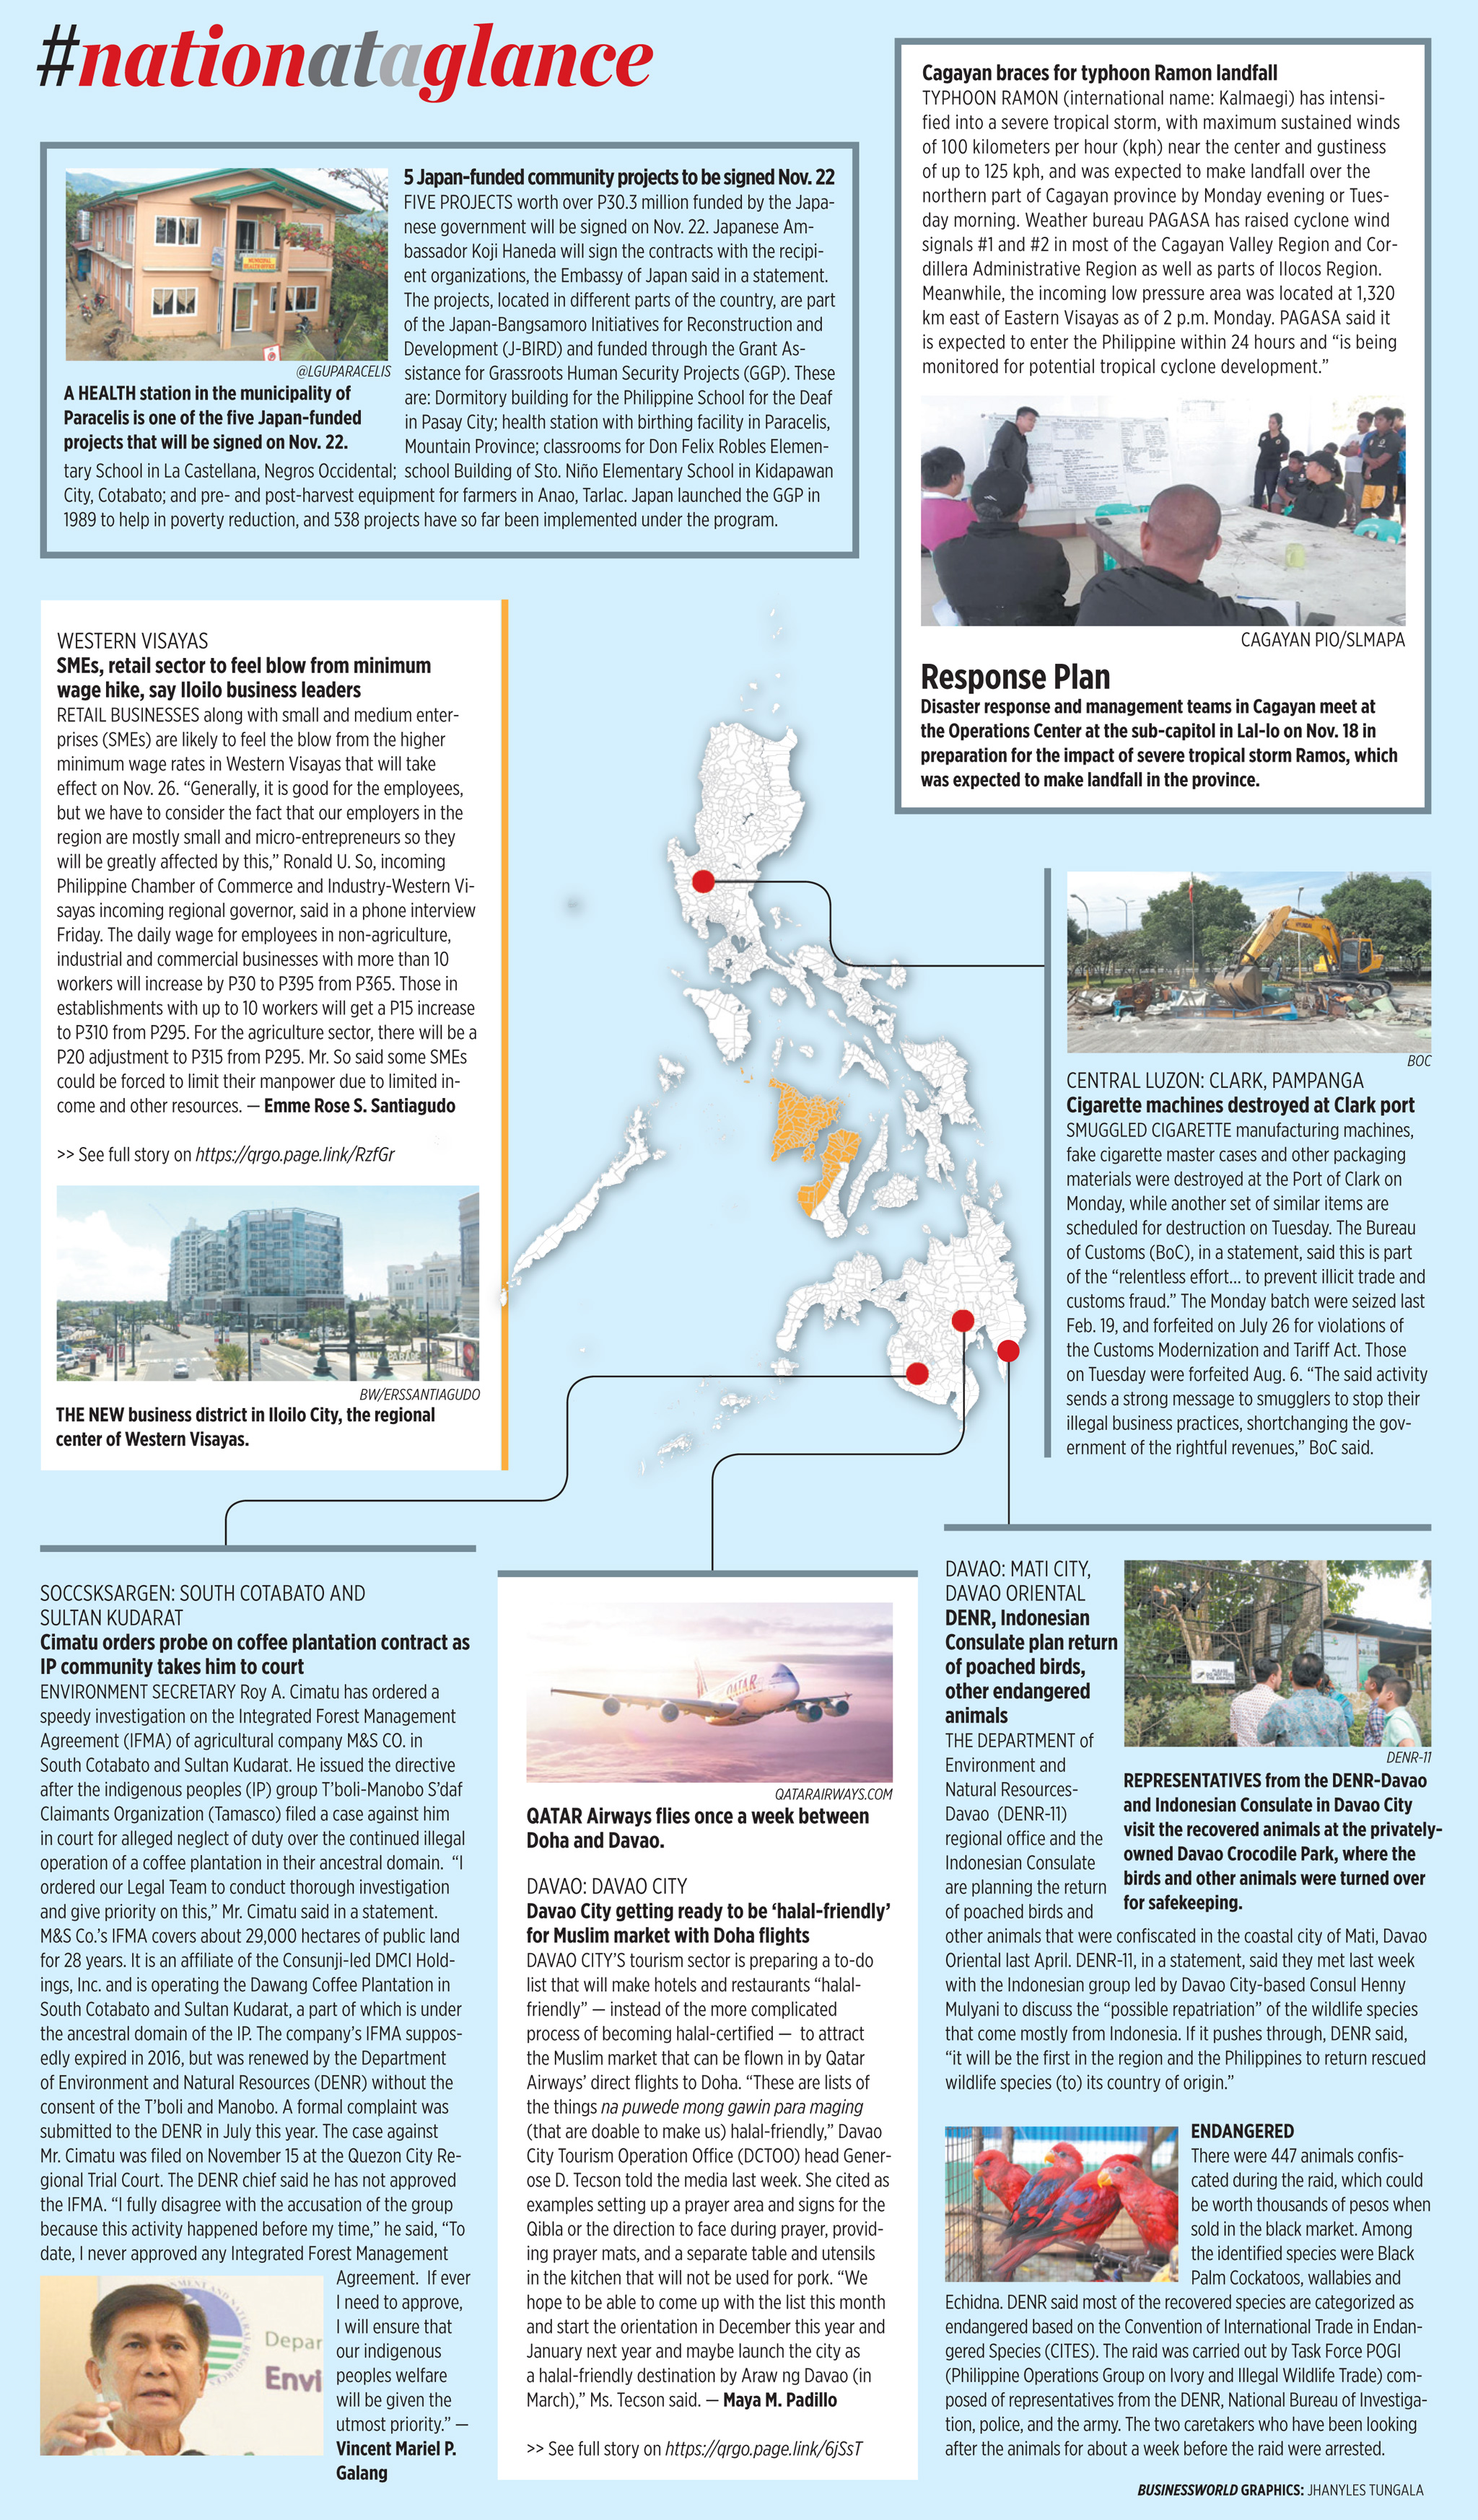 Nation at a Glance — (11/19/19)